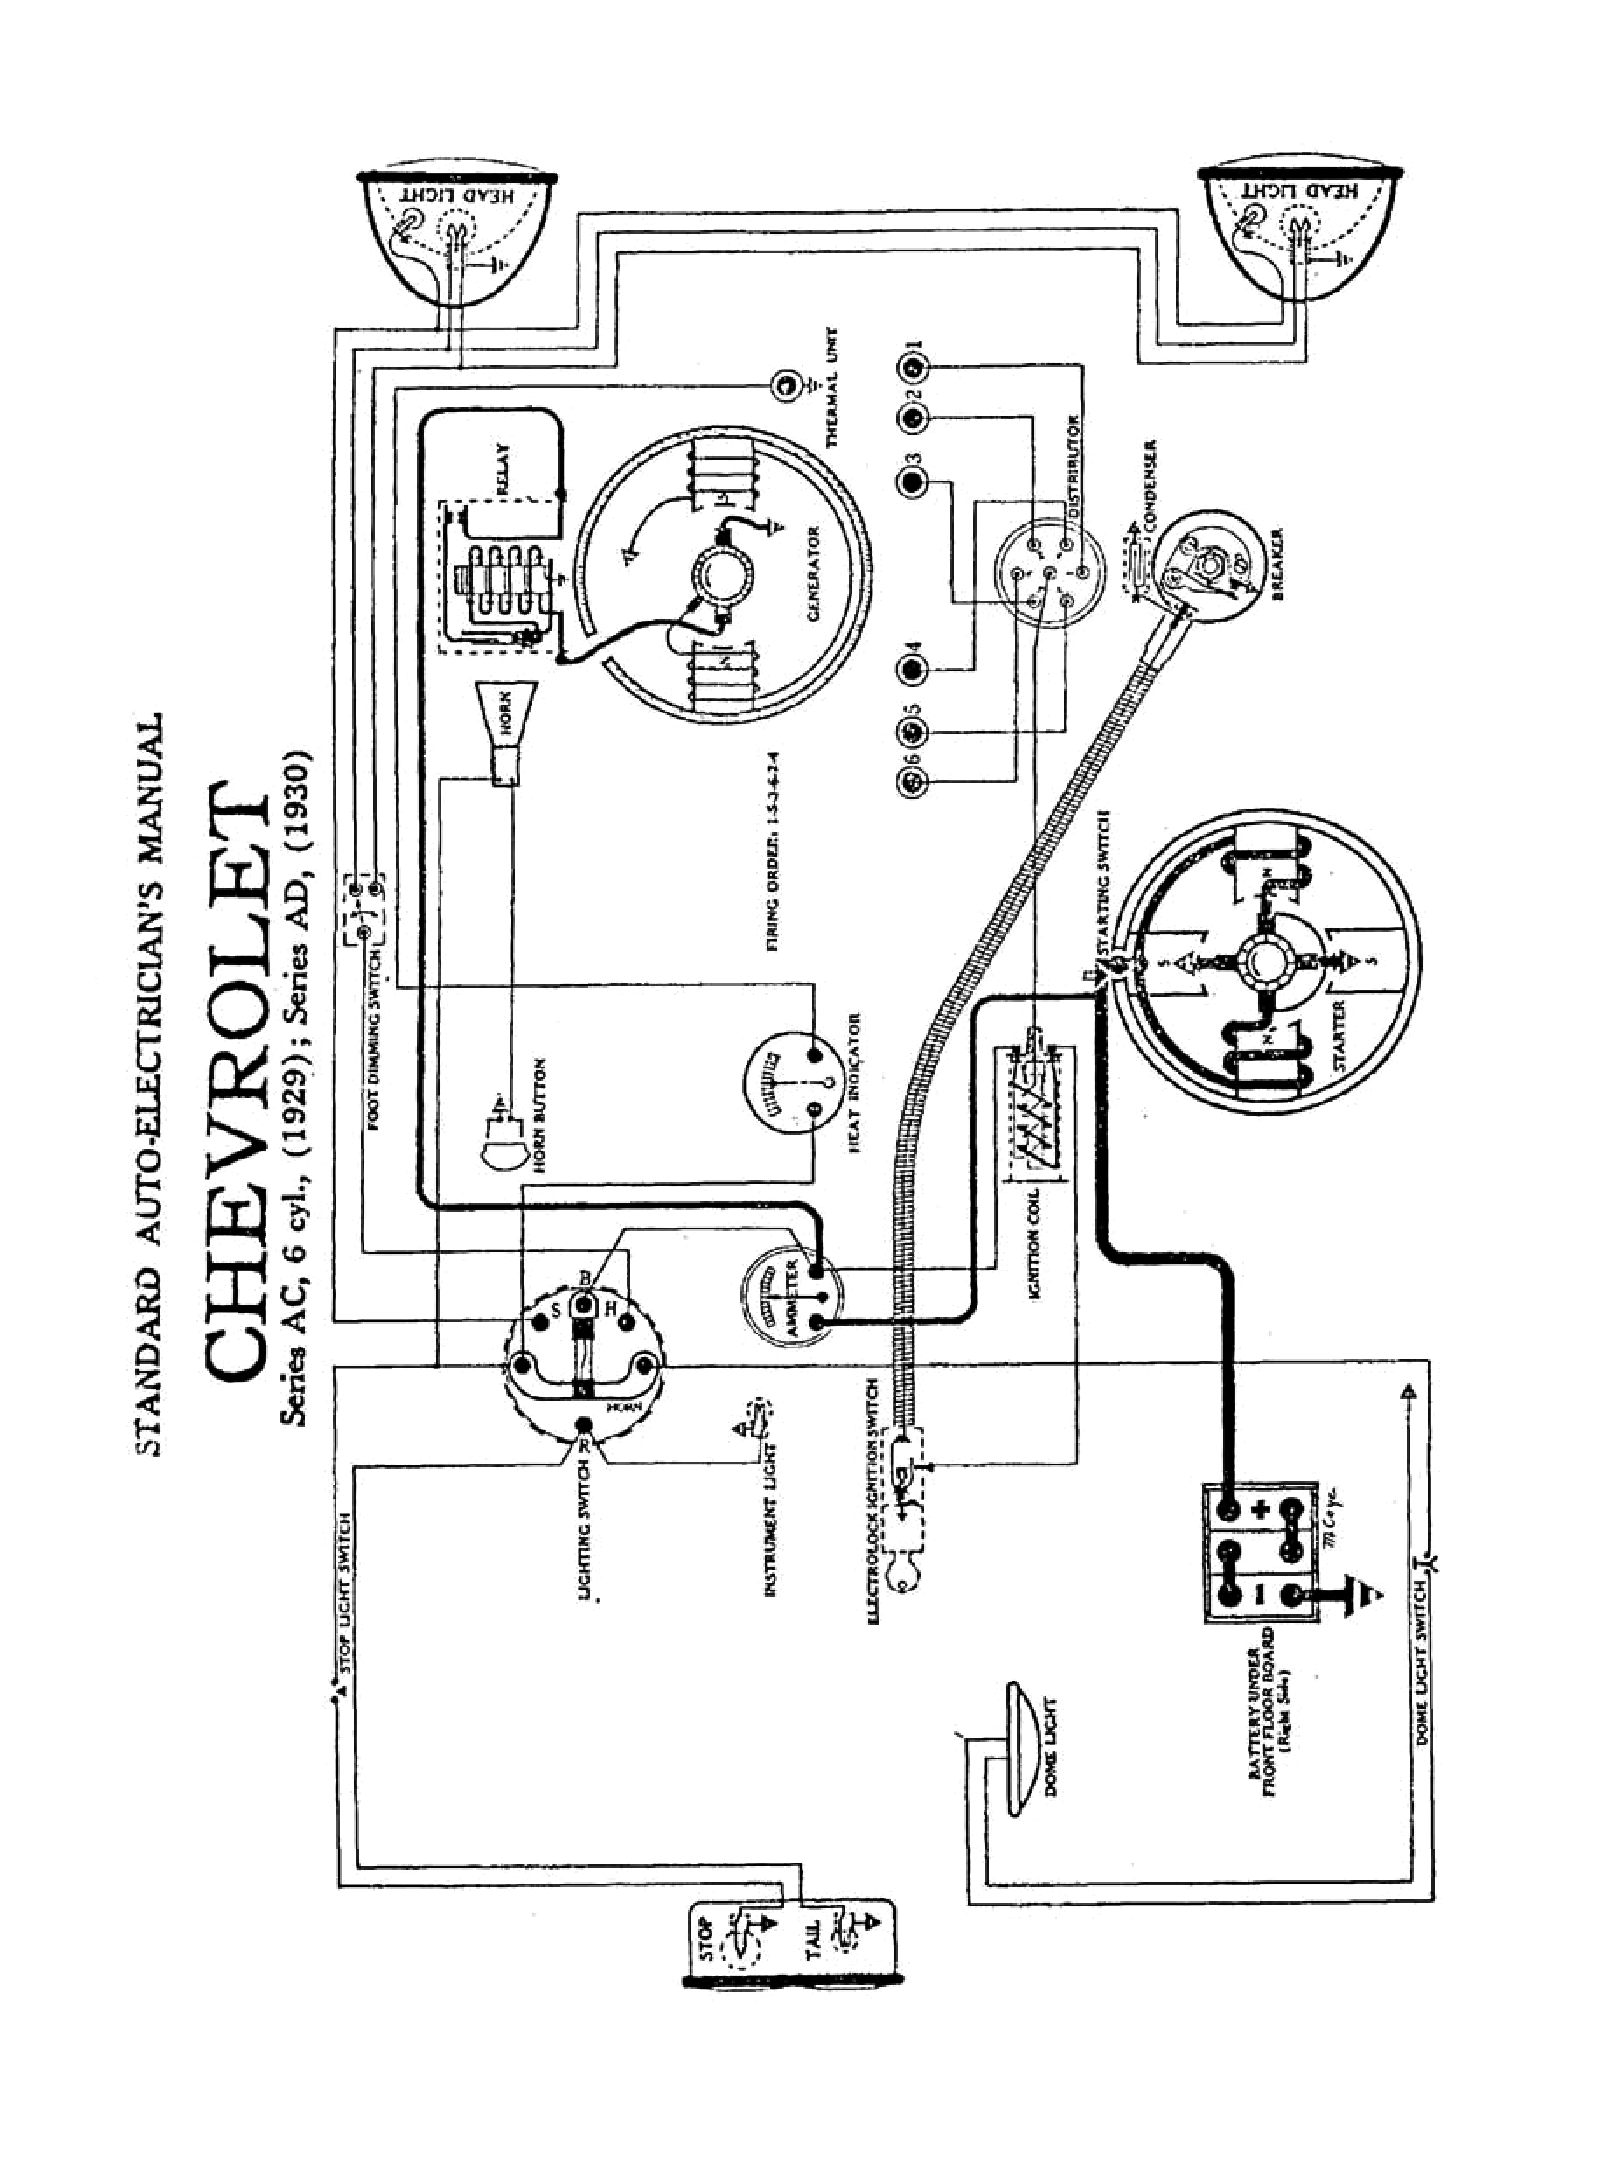 Free Car Wiring Diagram Oldsmobile on free auto wiring schematic, free car repair manuals, free vehicle diagrams, free chilton diagrams, free car parts, electrical diagrams, free diagram templates, free schematic diagram, free auto diagrams, free home, free honda wiring diagram, free car schematics, free electronic schematics, free engine rebuilding diagrams, free car seats, free car diagnostic, free car tools, free car maintenance, free car engine diagrams, free toyota repair diagrams,